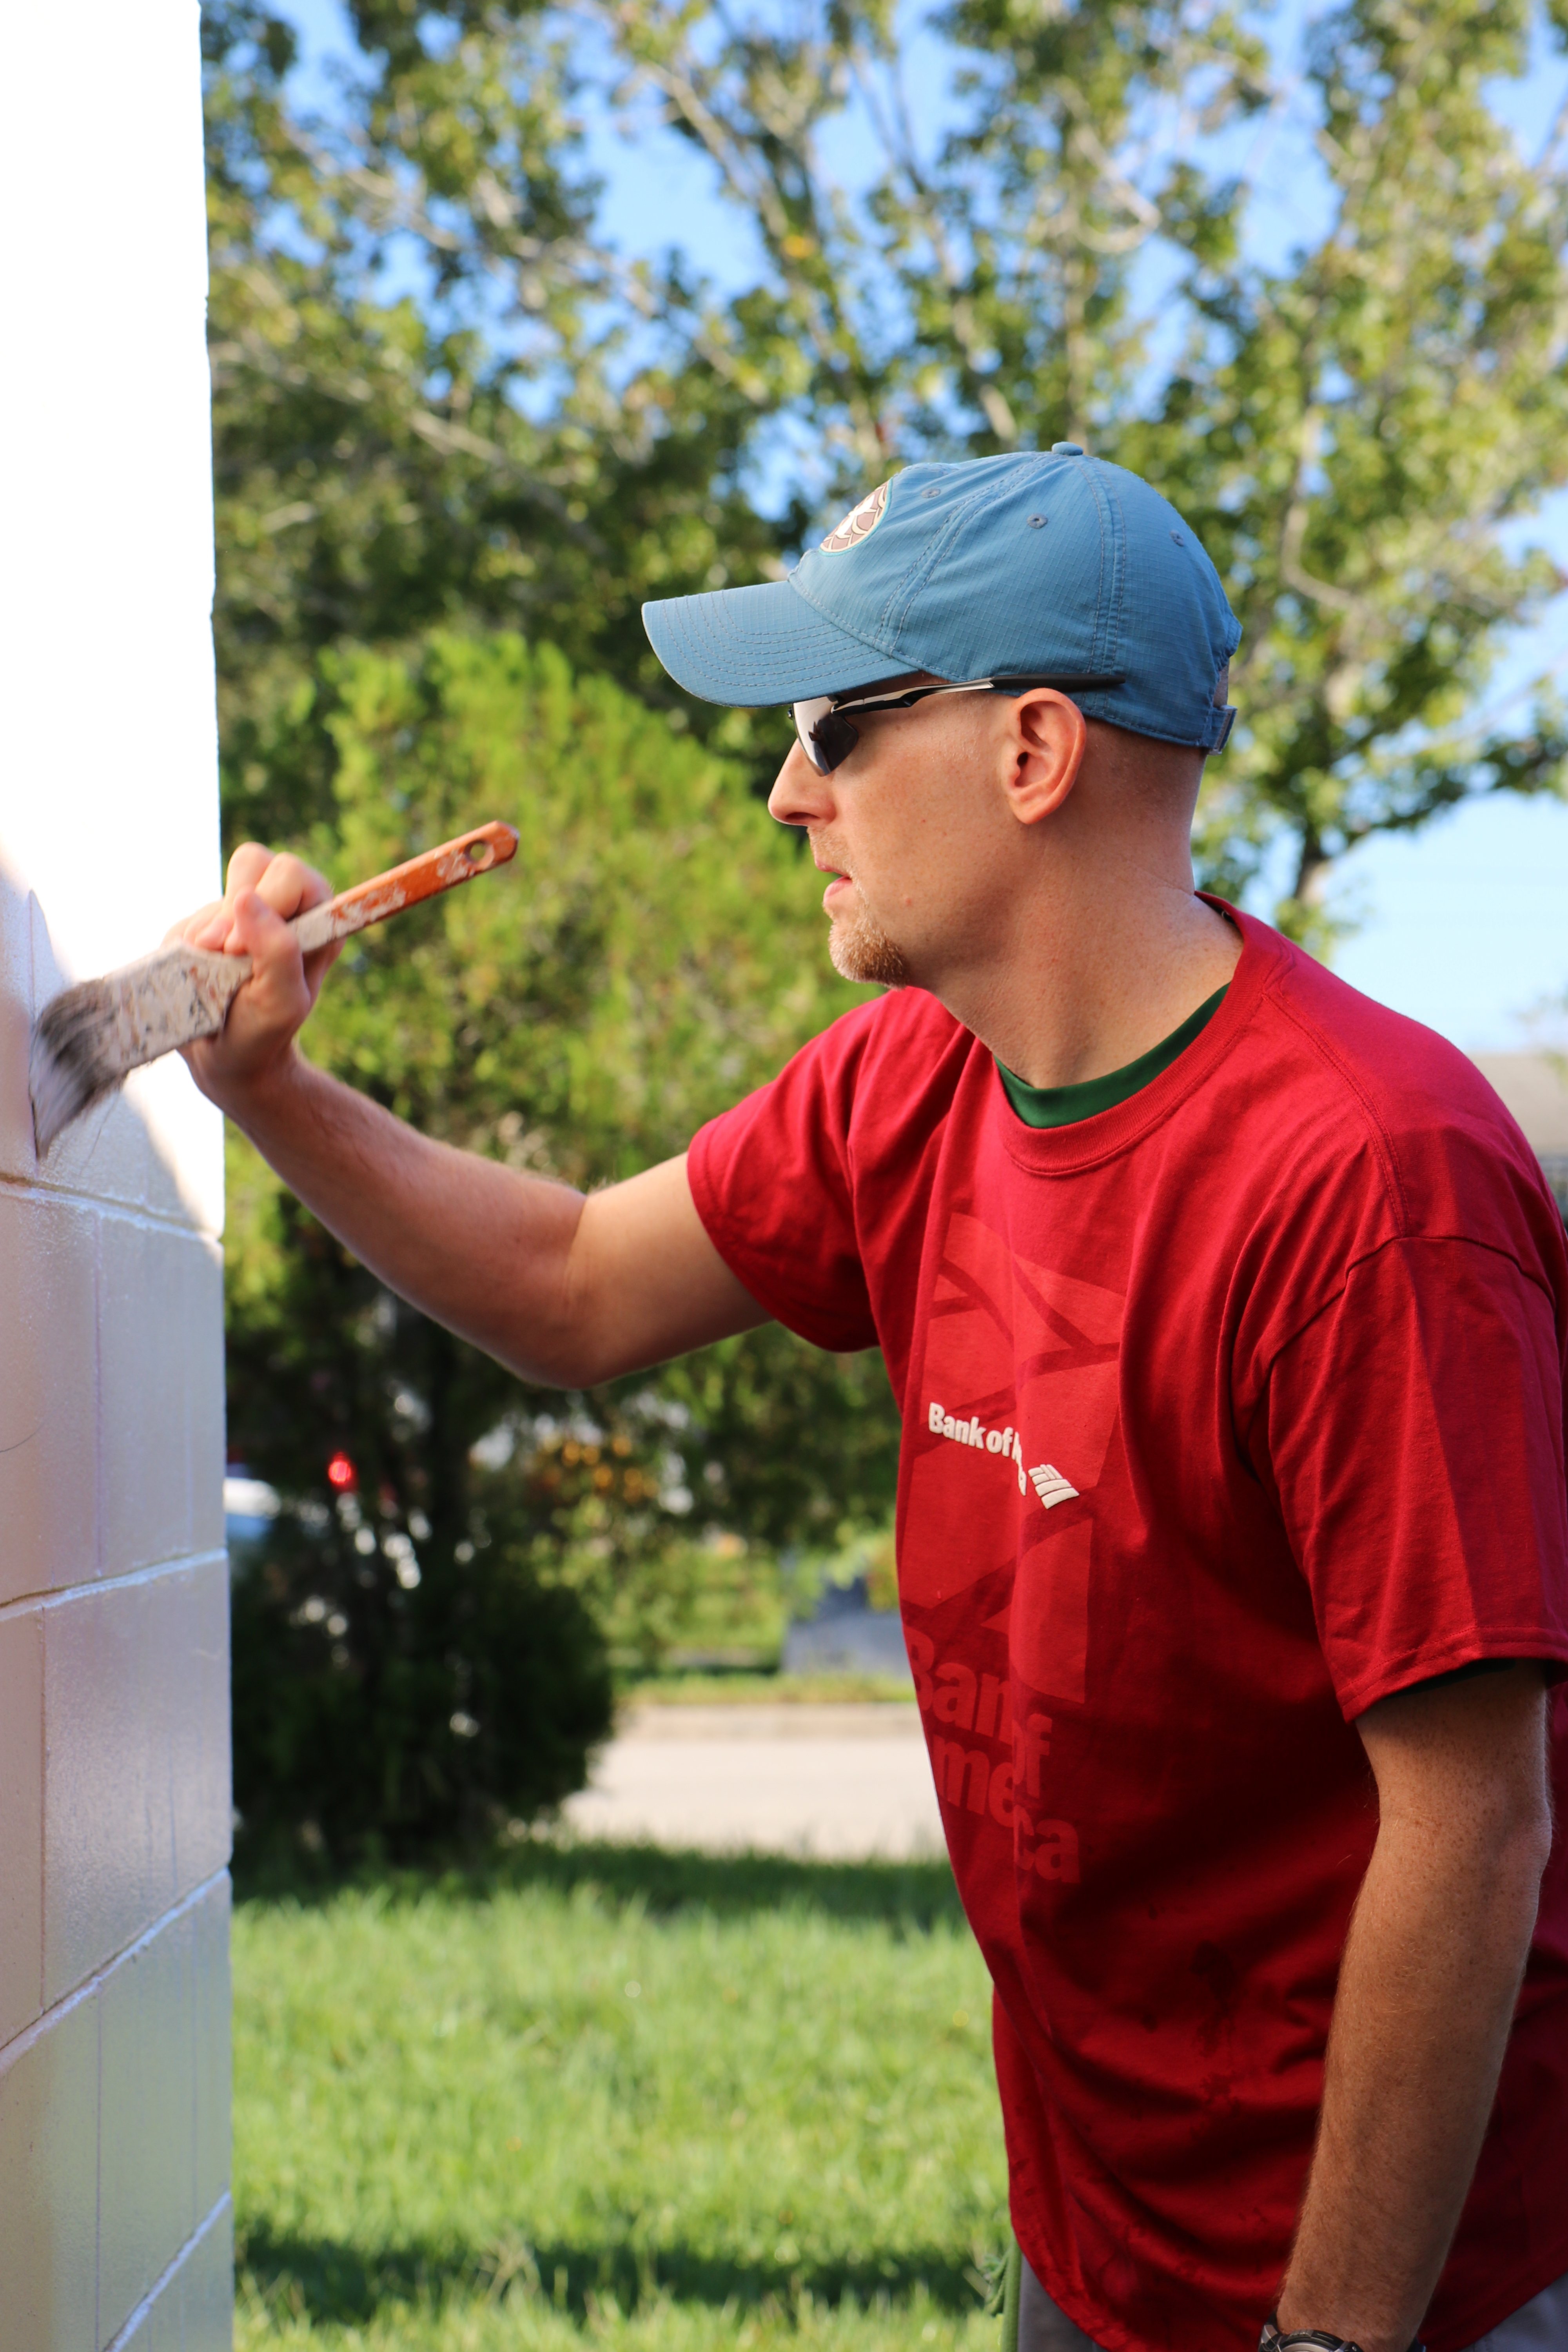 Man wearing baseball cap looking at the side of a house and painting